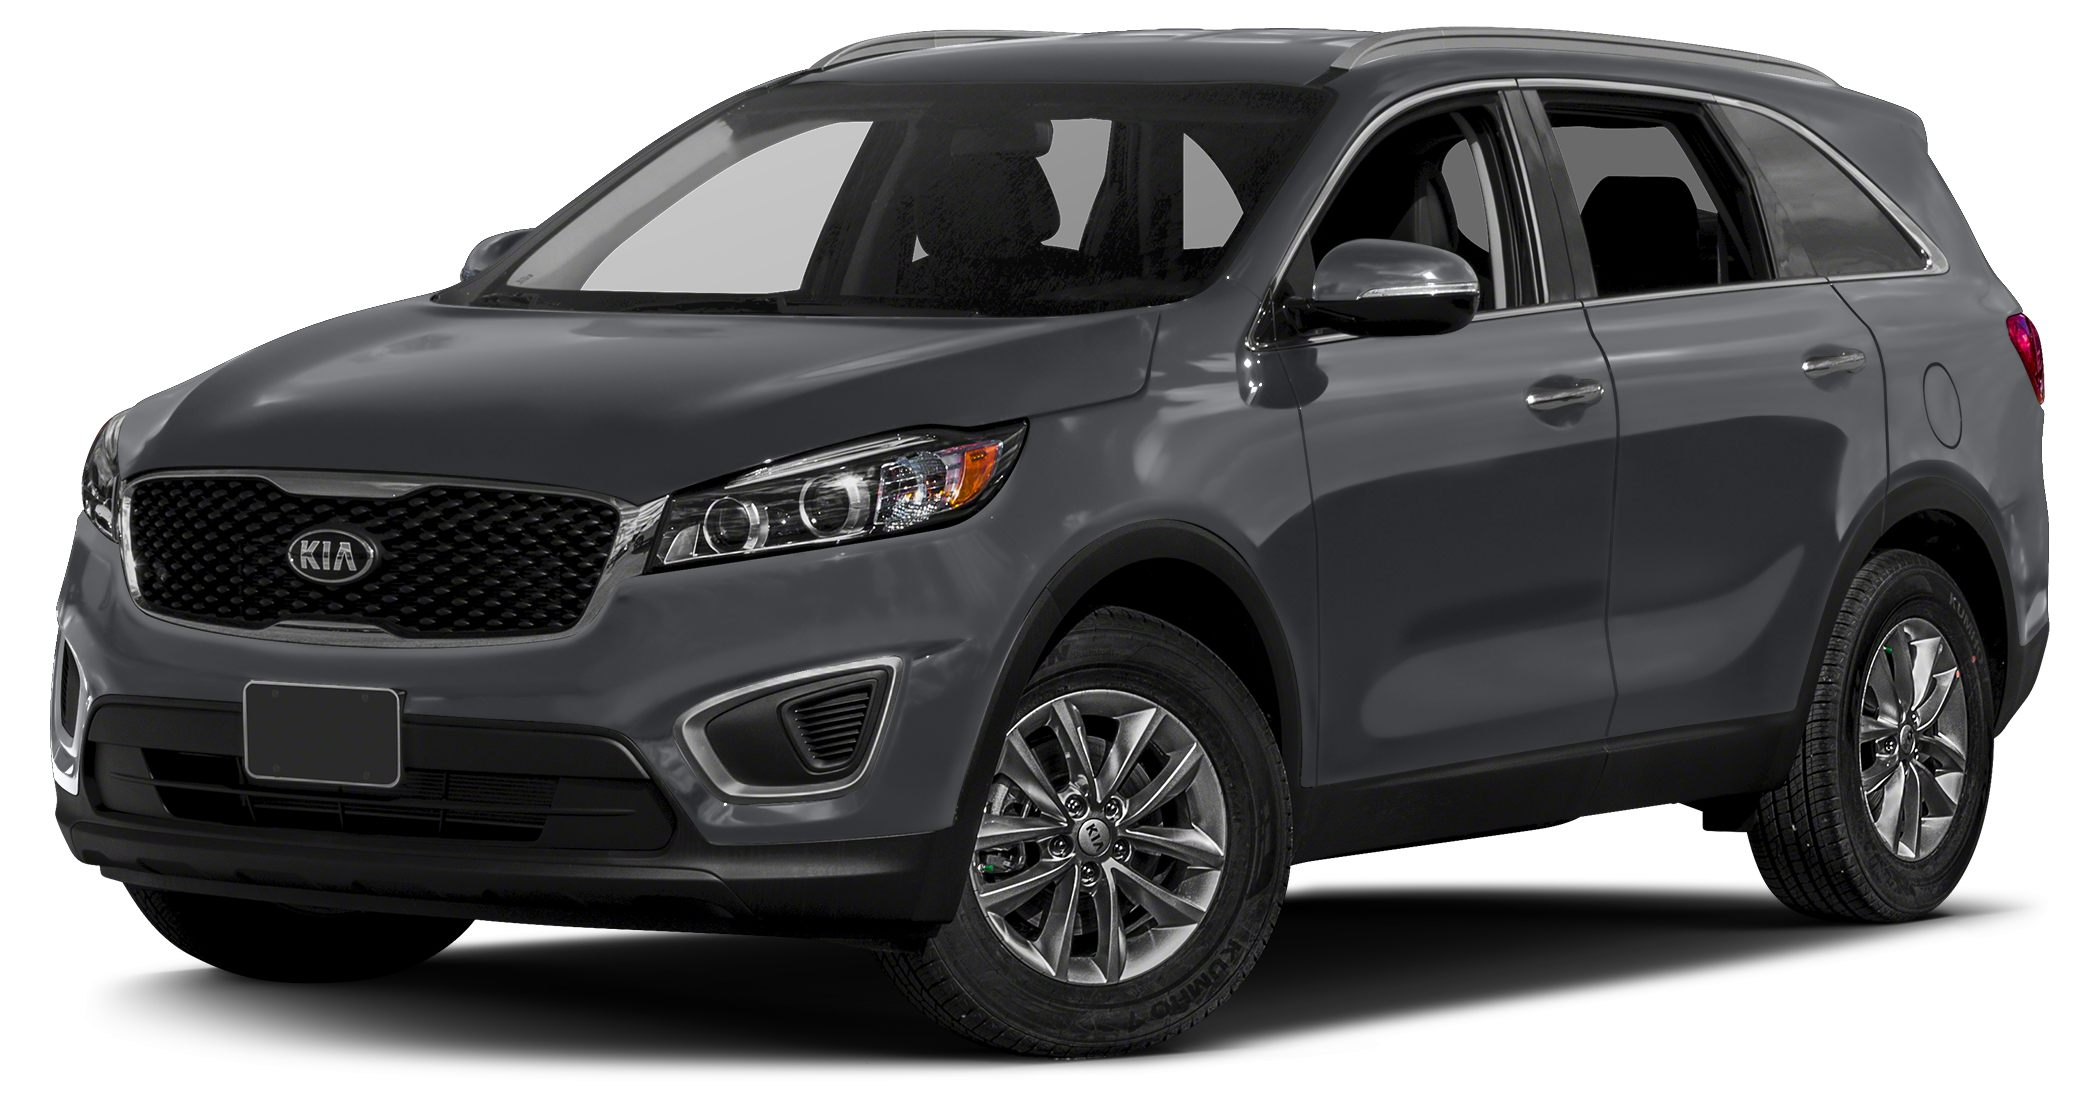 2016 Kia Sorento 33 LX  NEW BRAKES and 1 OWNER AWD Hurry in Are you READY for a Kia